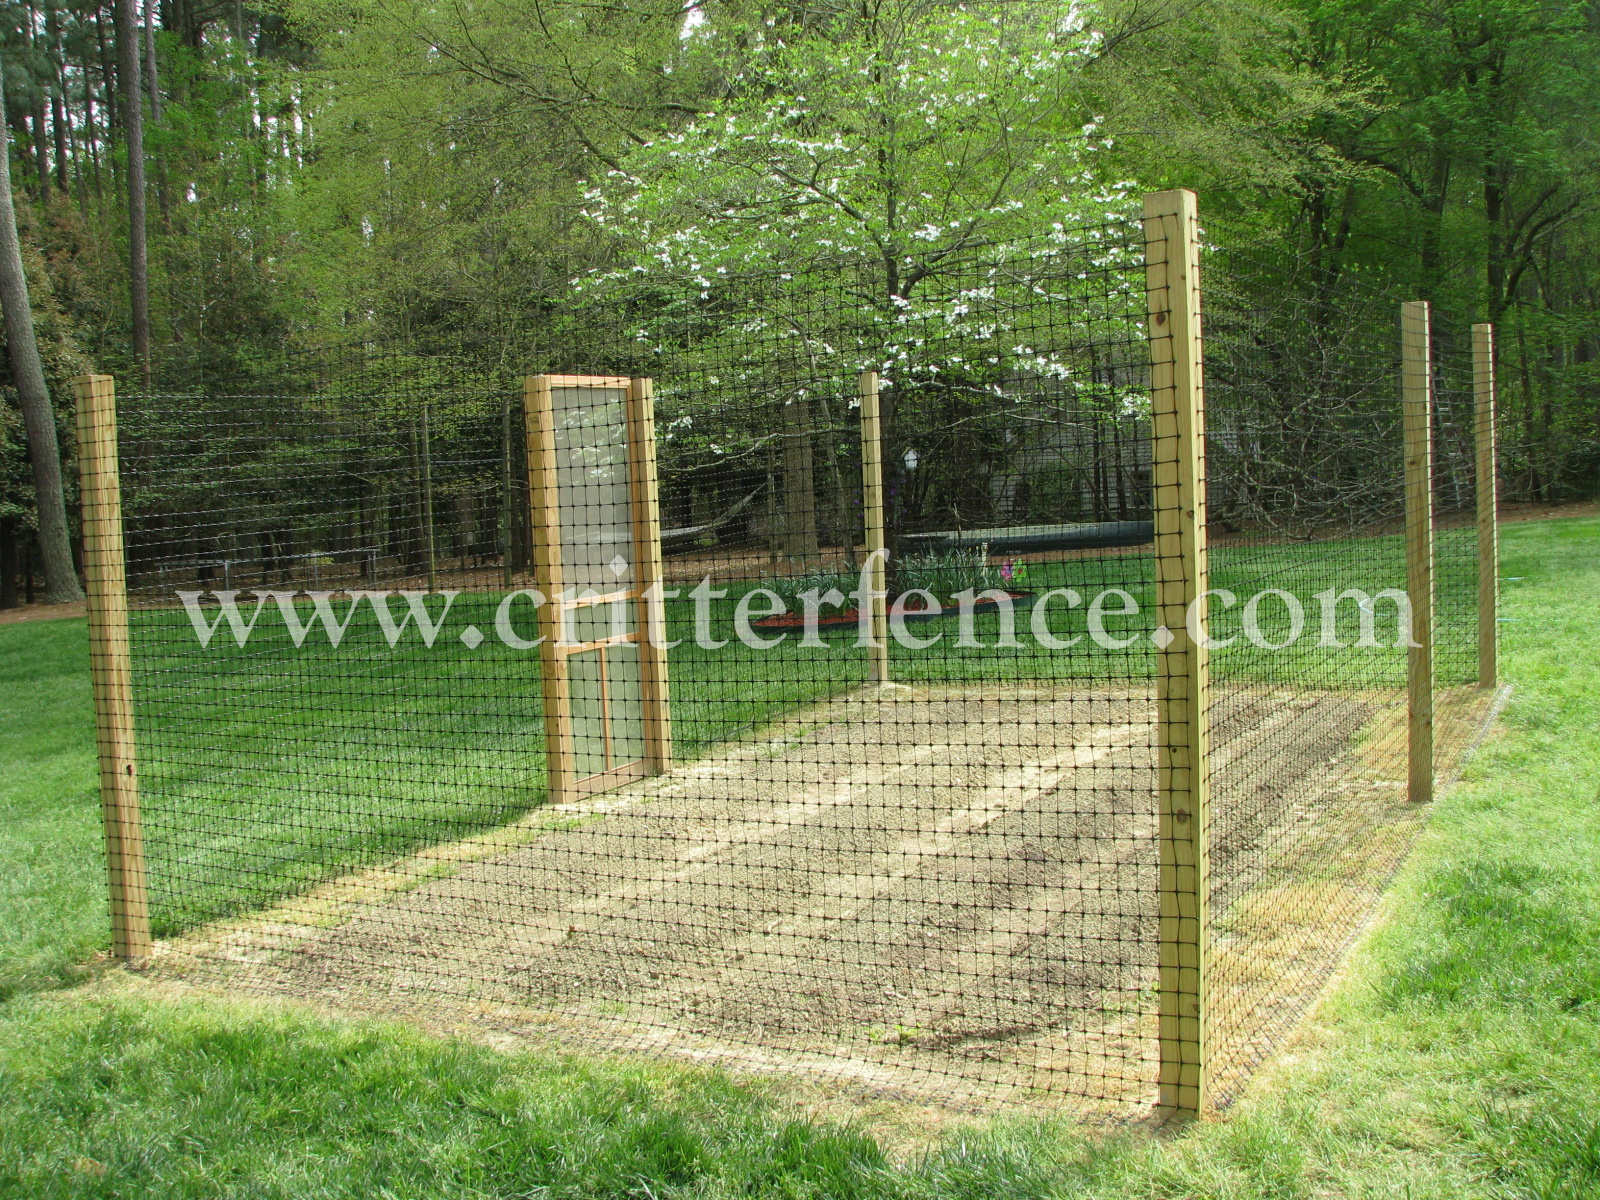 chris raleigh nc deer fence on wood posts garden idea vegetablegardenfenceideaslandscapetraditionalwithdeerfence